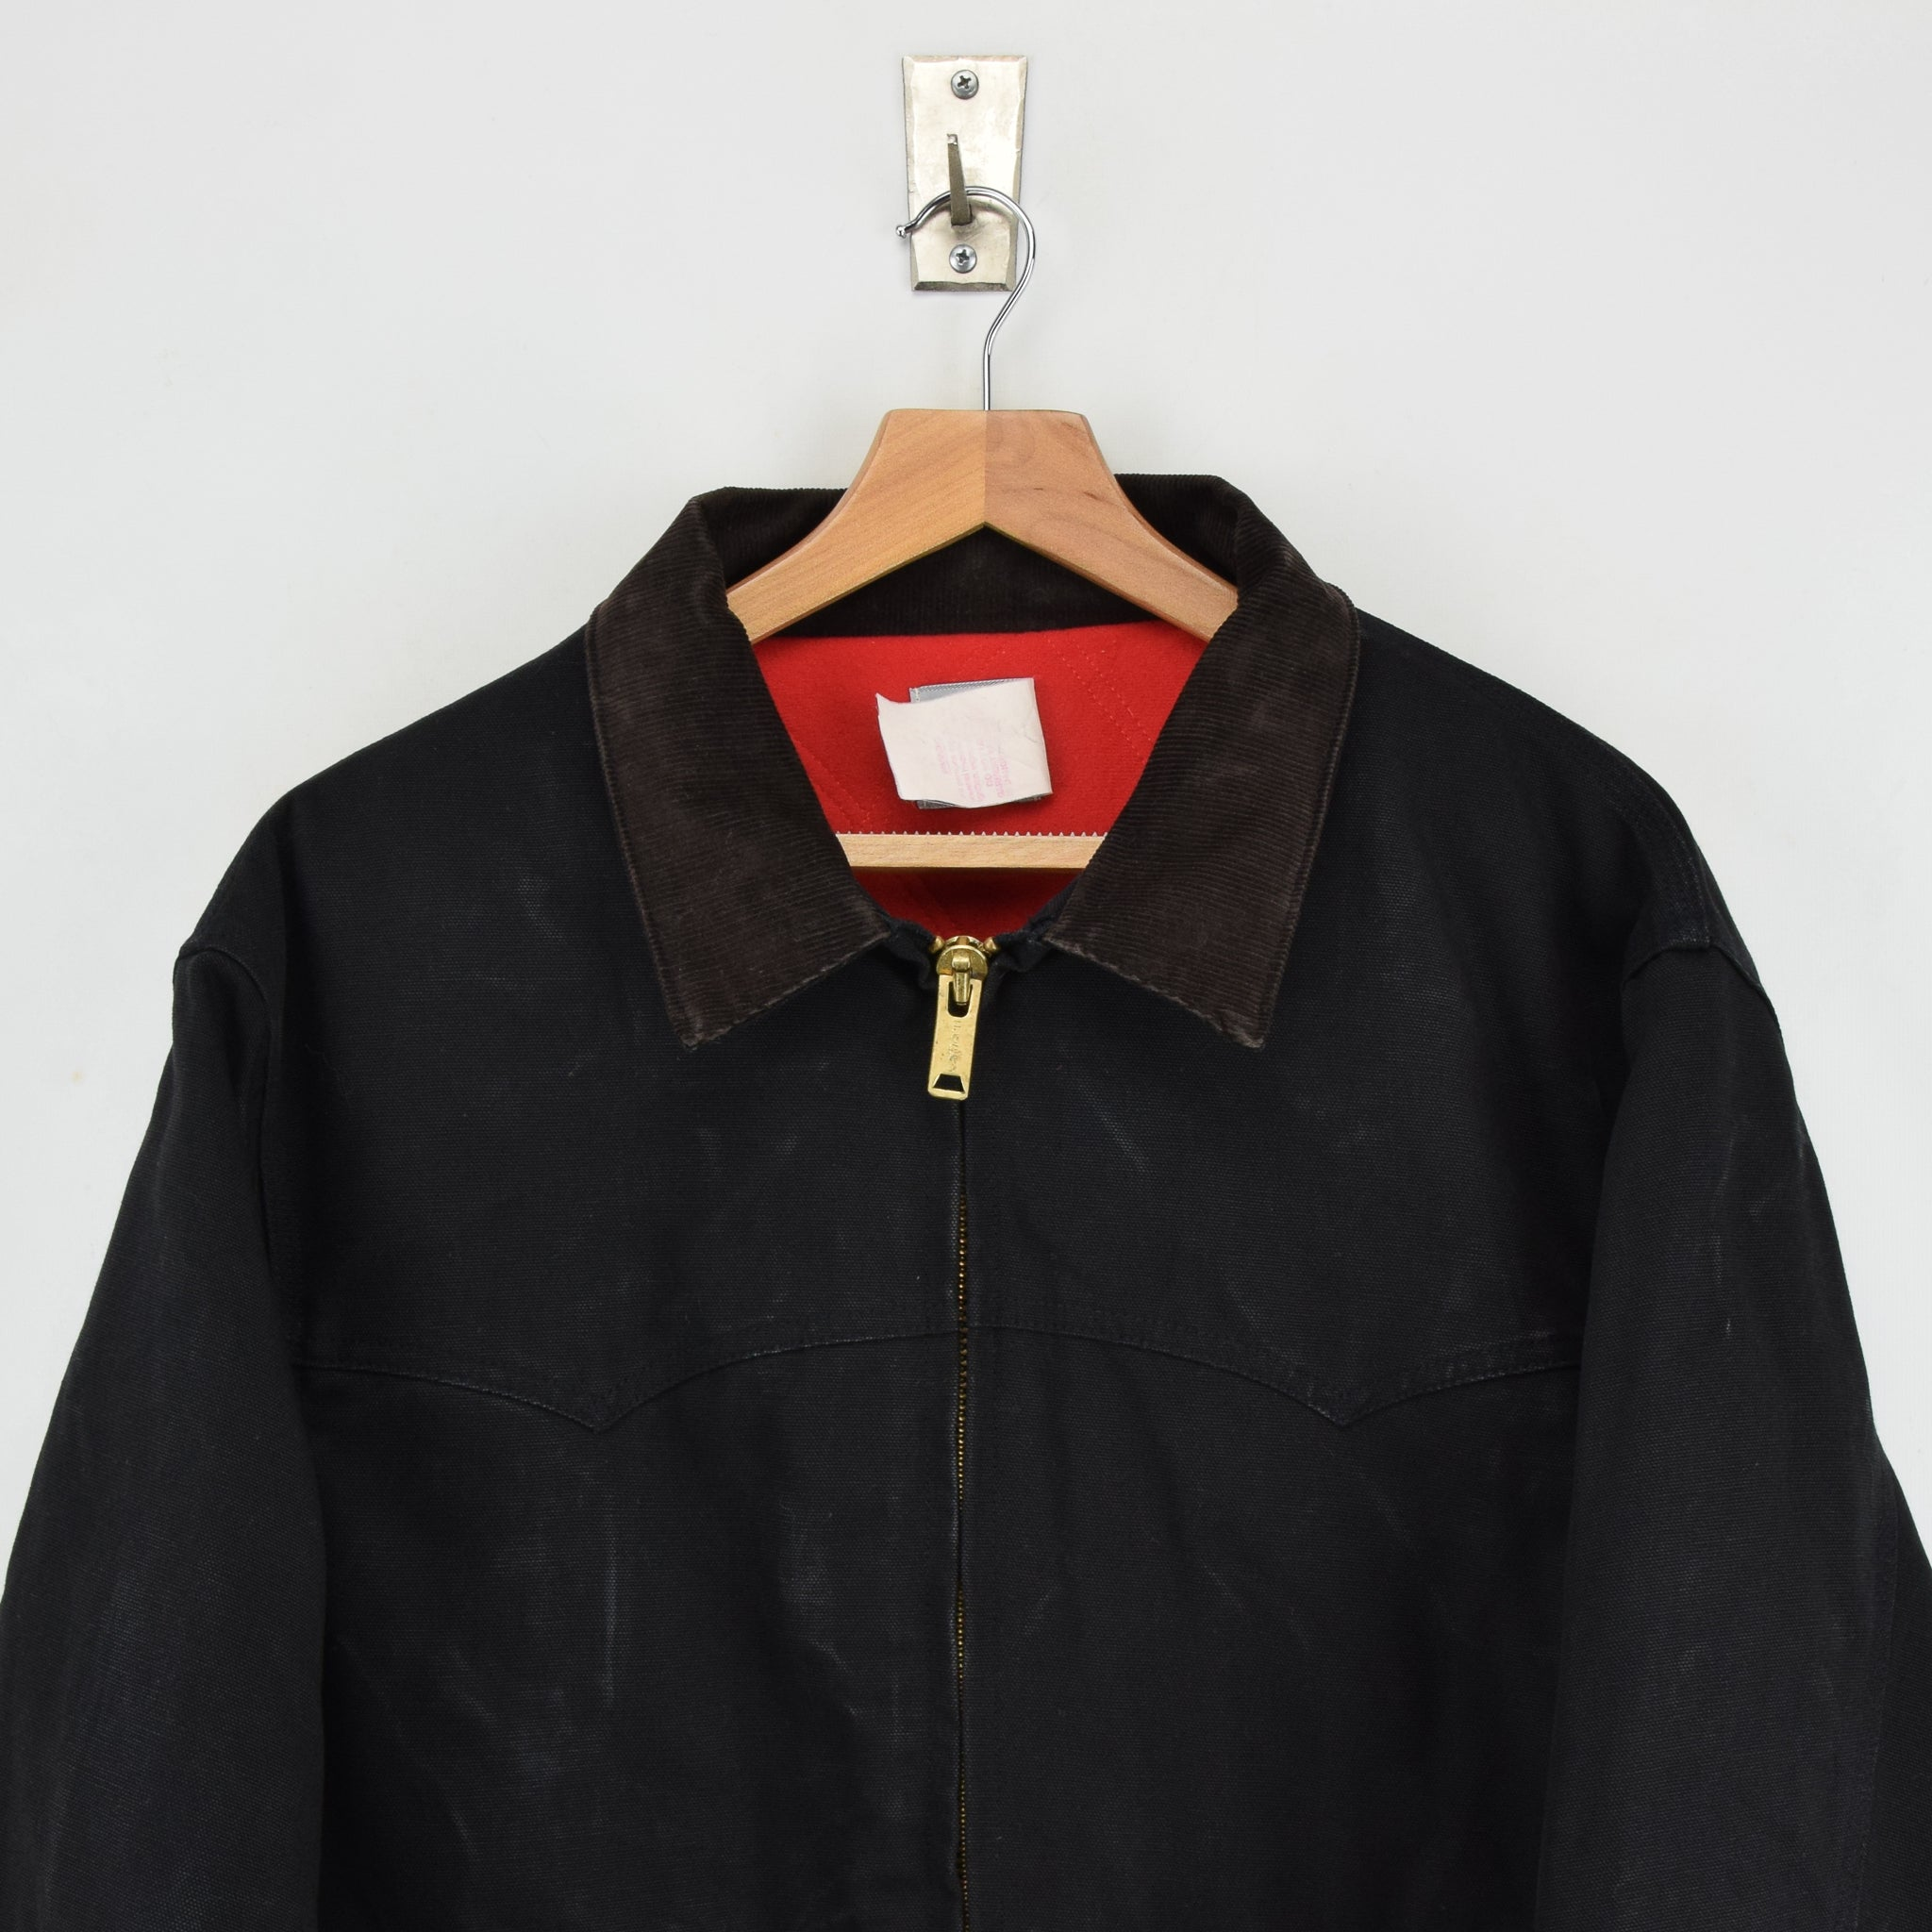 Vintage Carhartt Duck Canvas Quilt Lined Black Bomber Jacket Made in USA XL chest